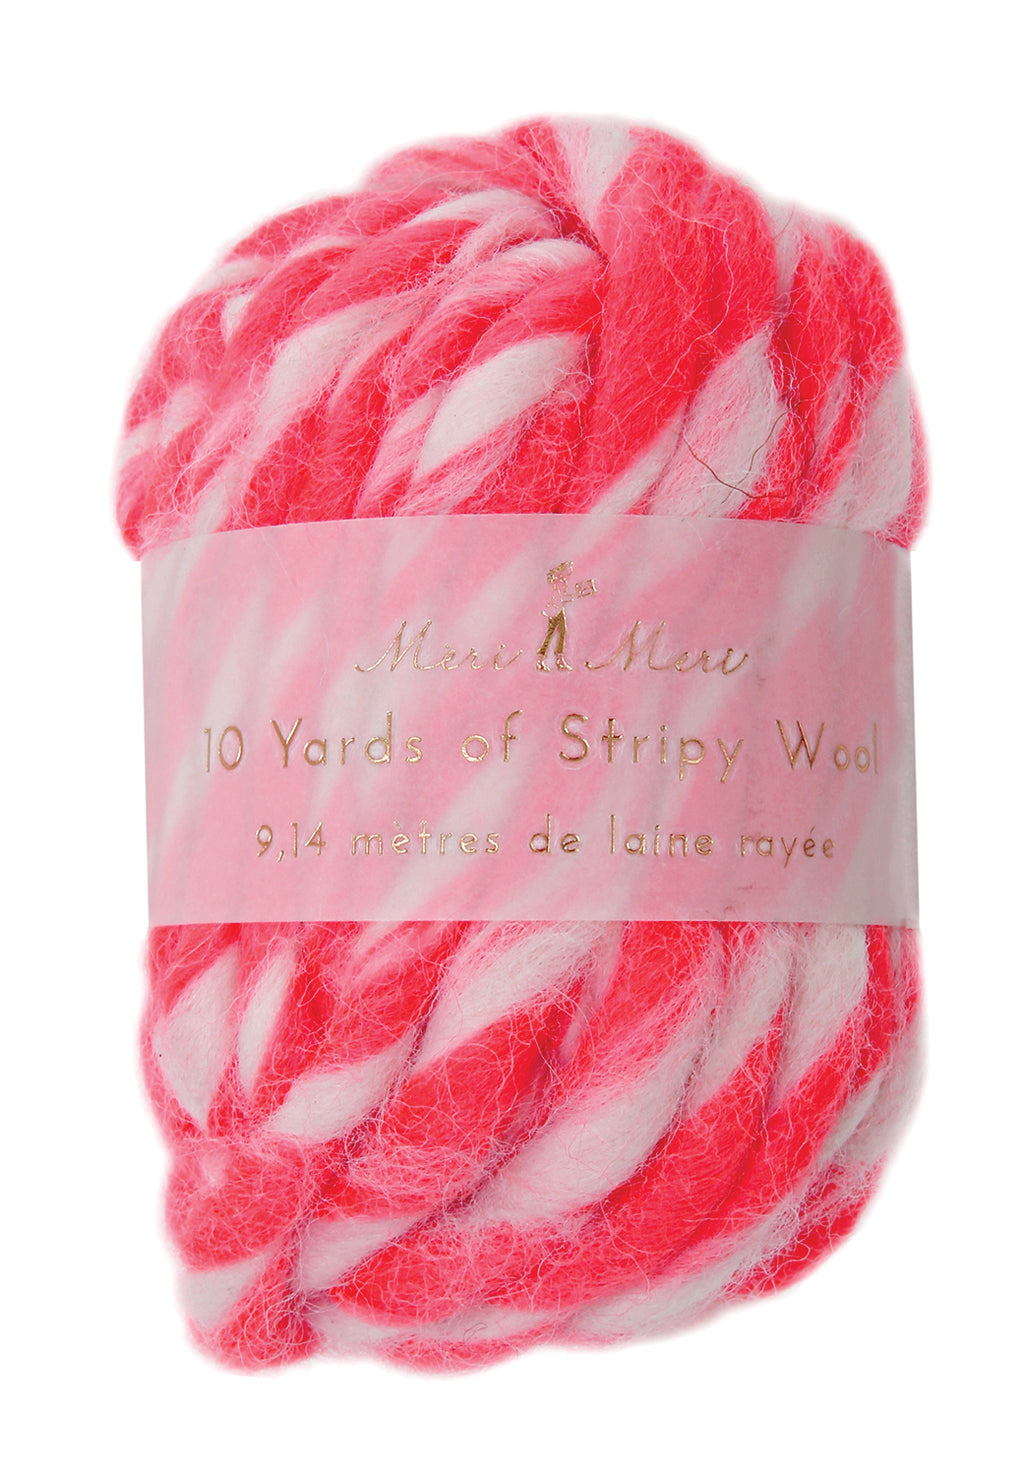 Stripy Wool